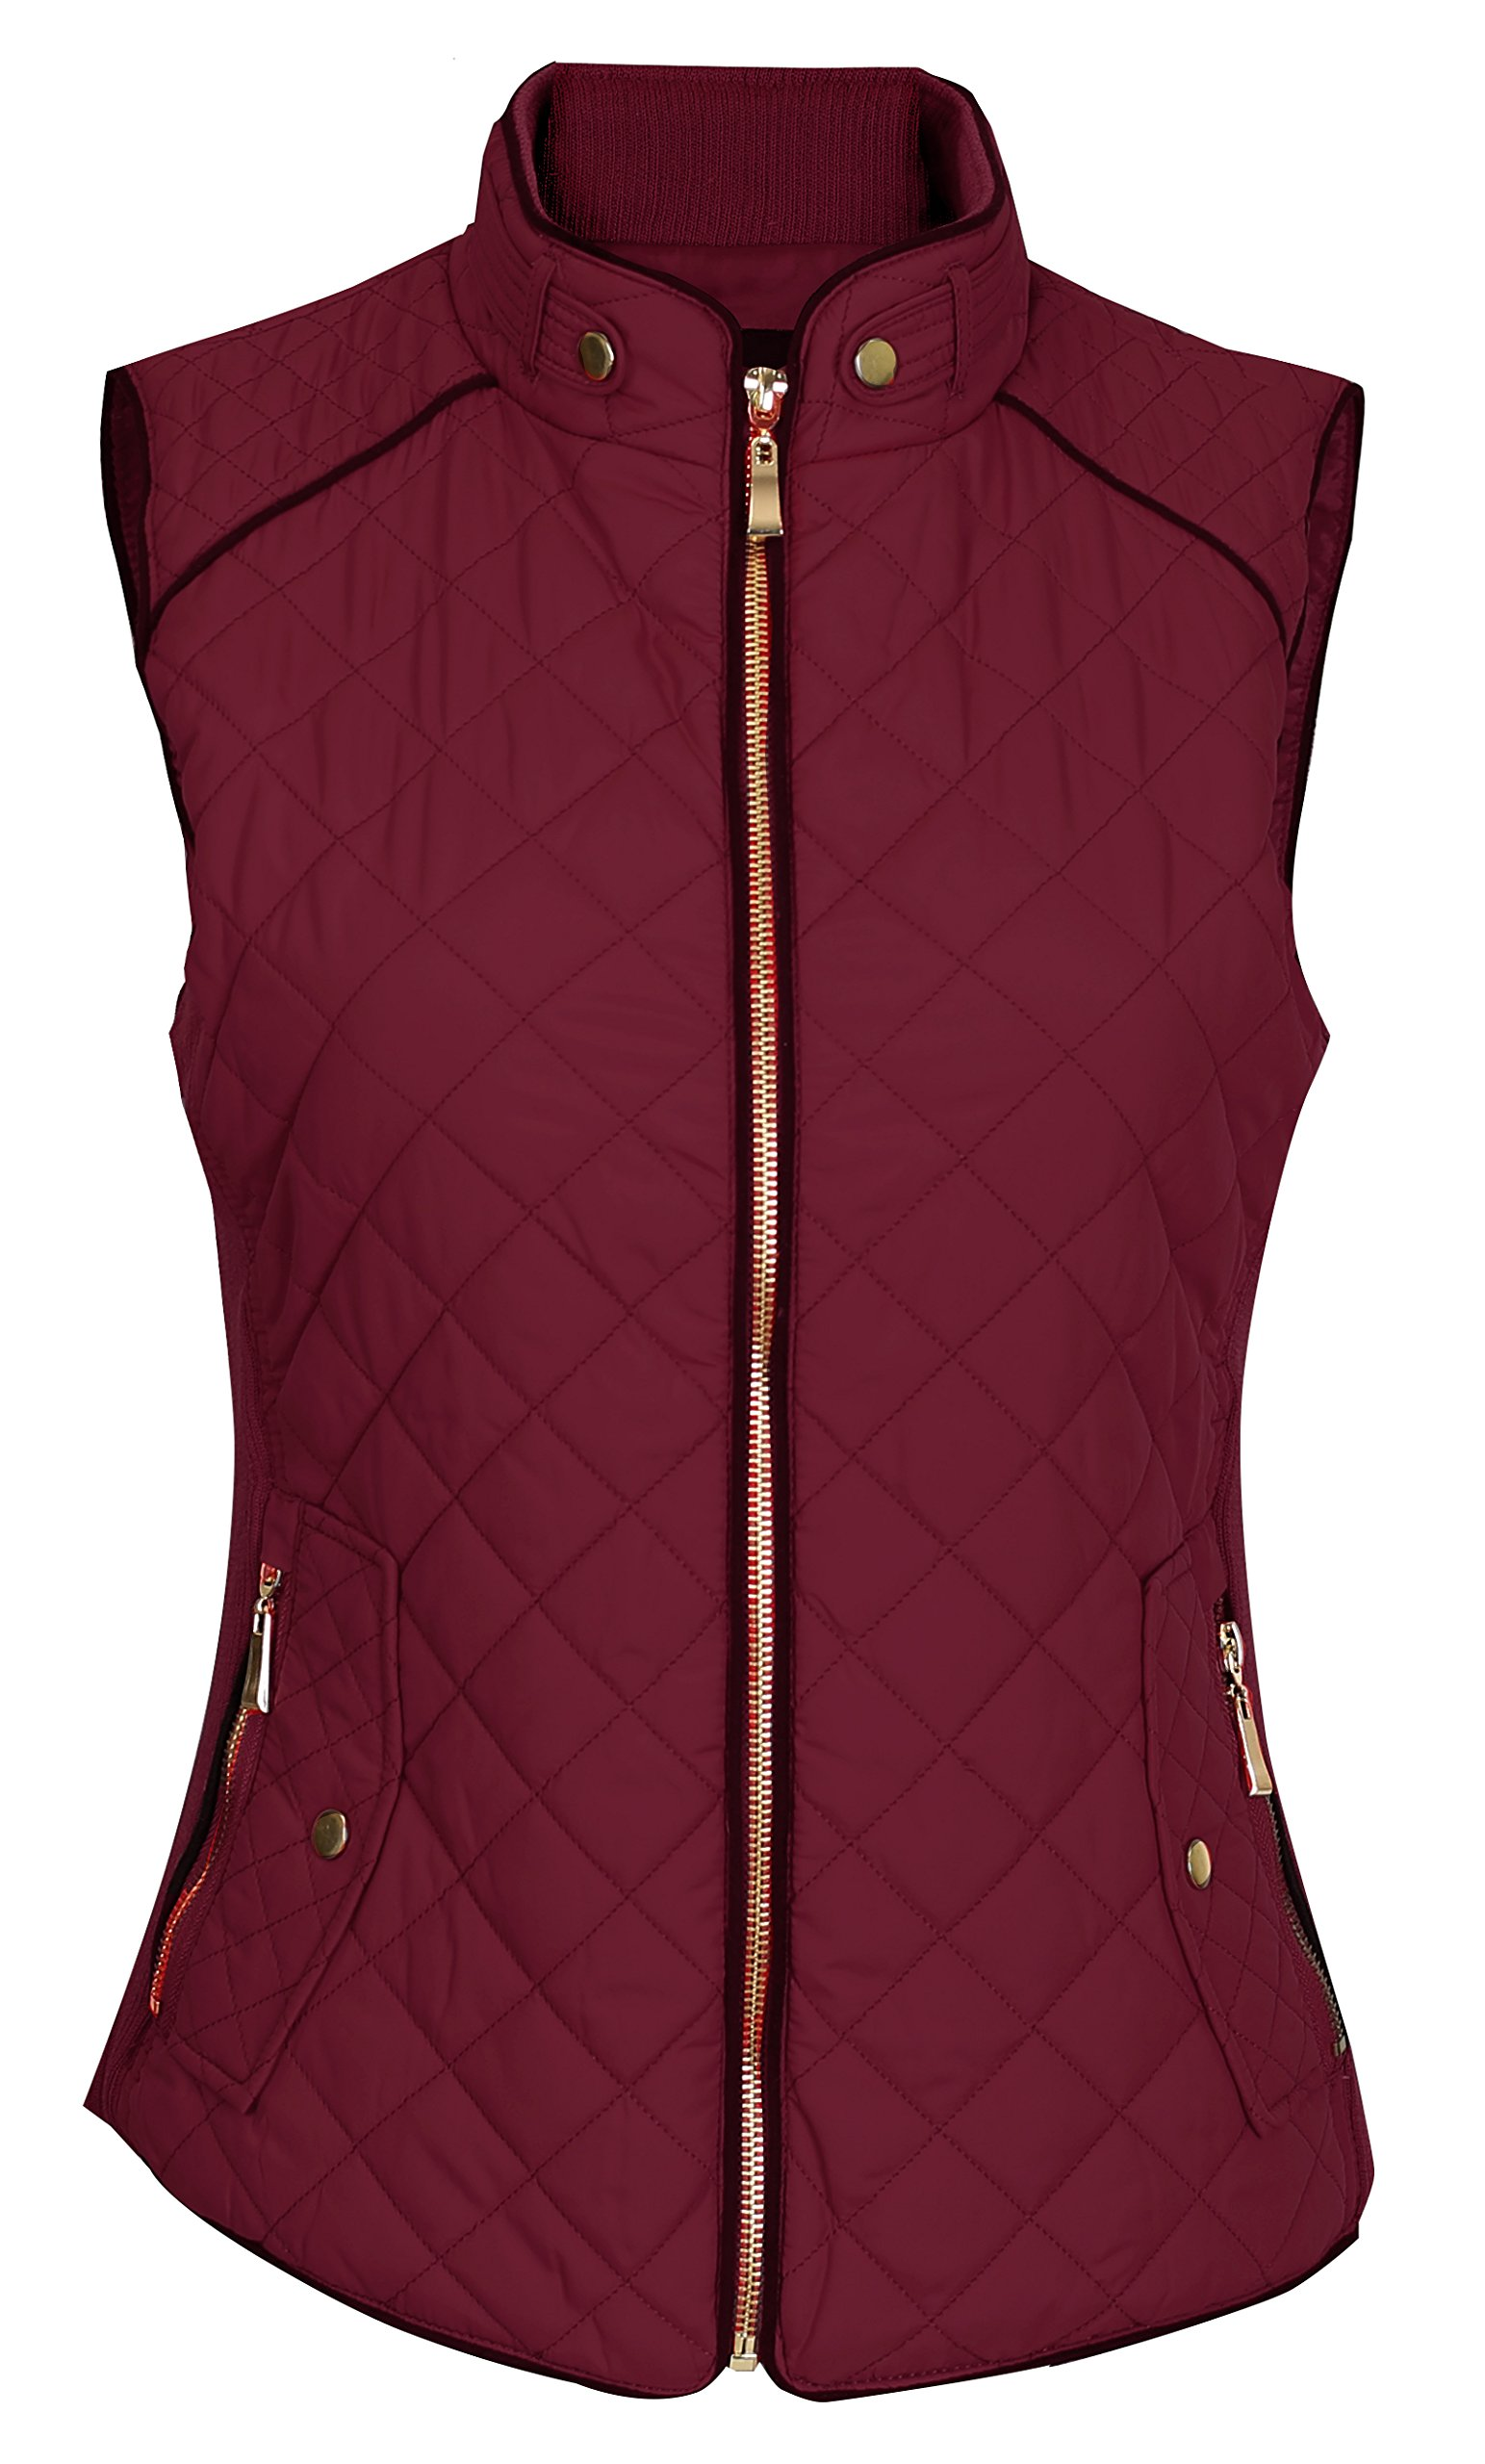 Pinmuse Women's Light Weight Zip up Front Quilted Padded Vest W Pockets Burgundy S